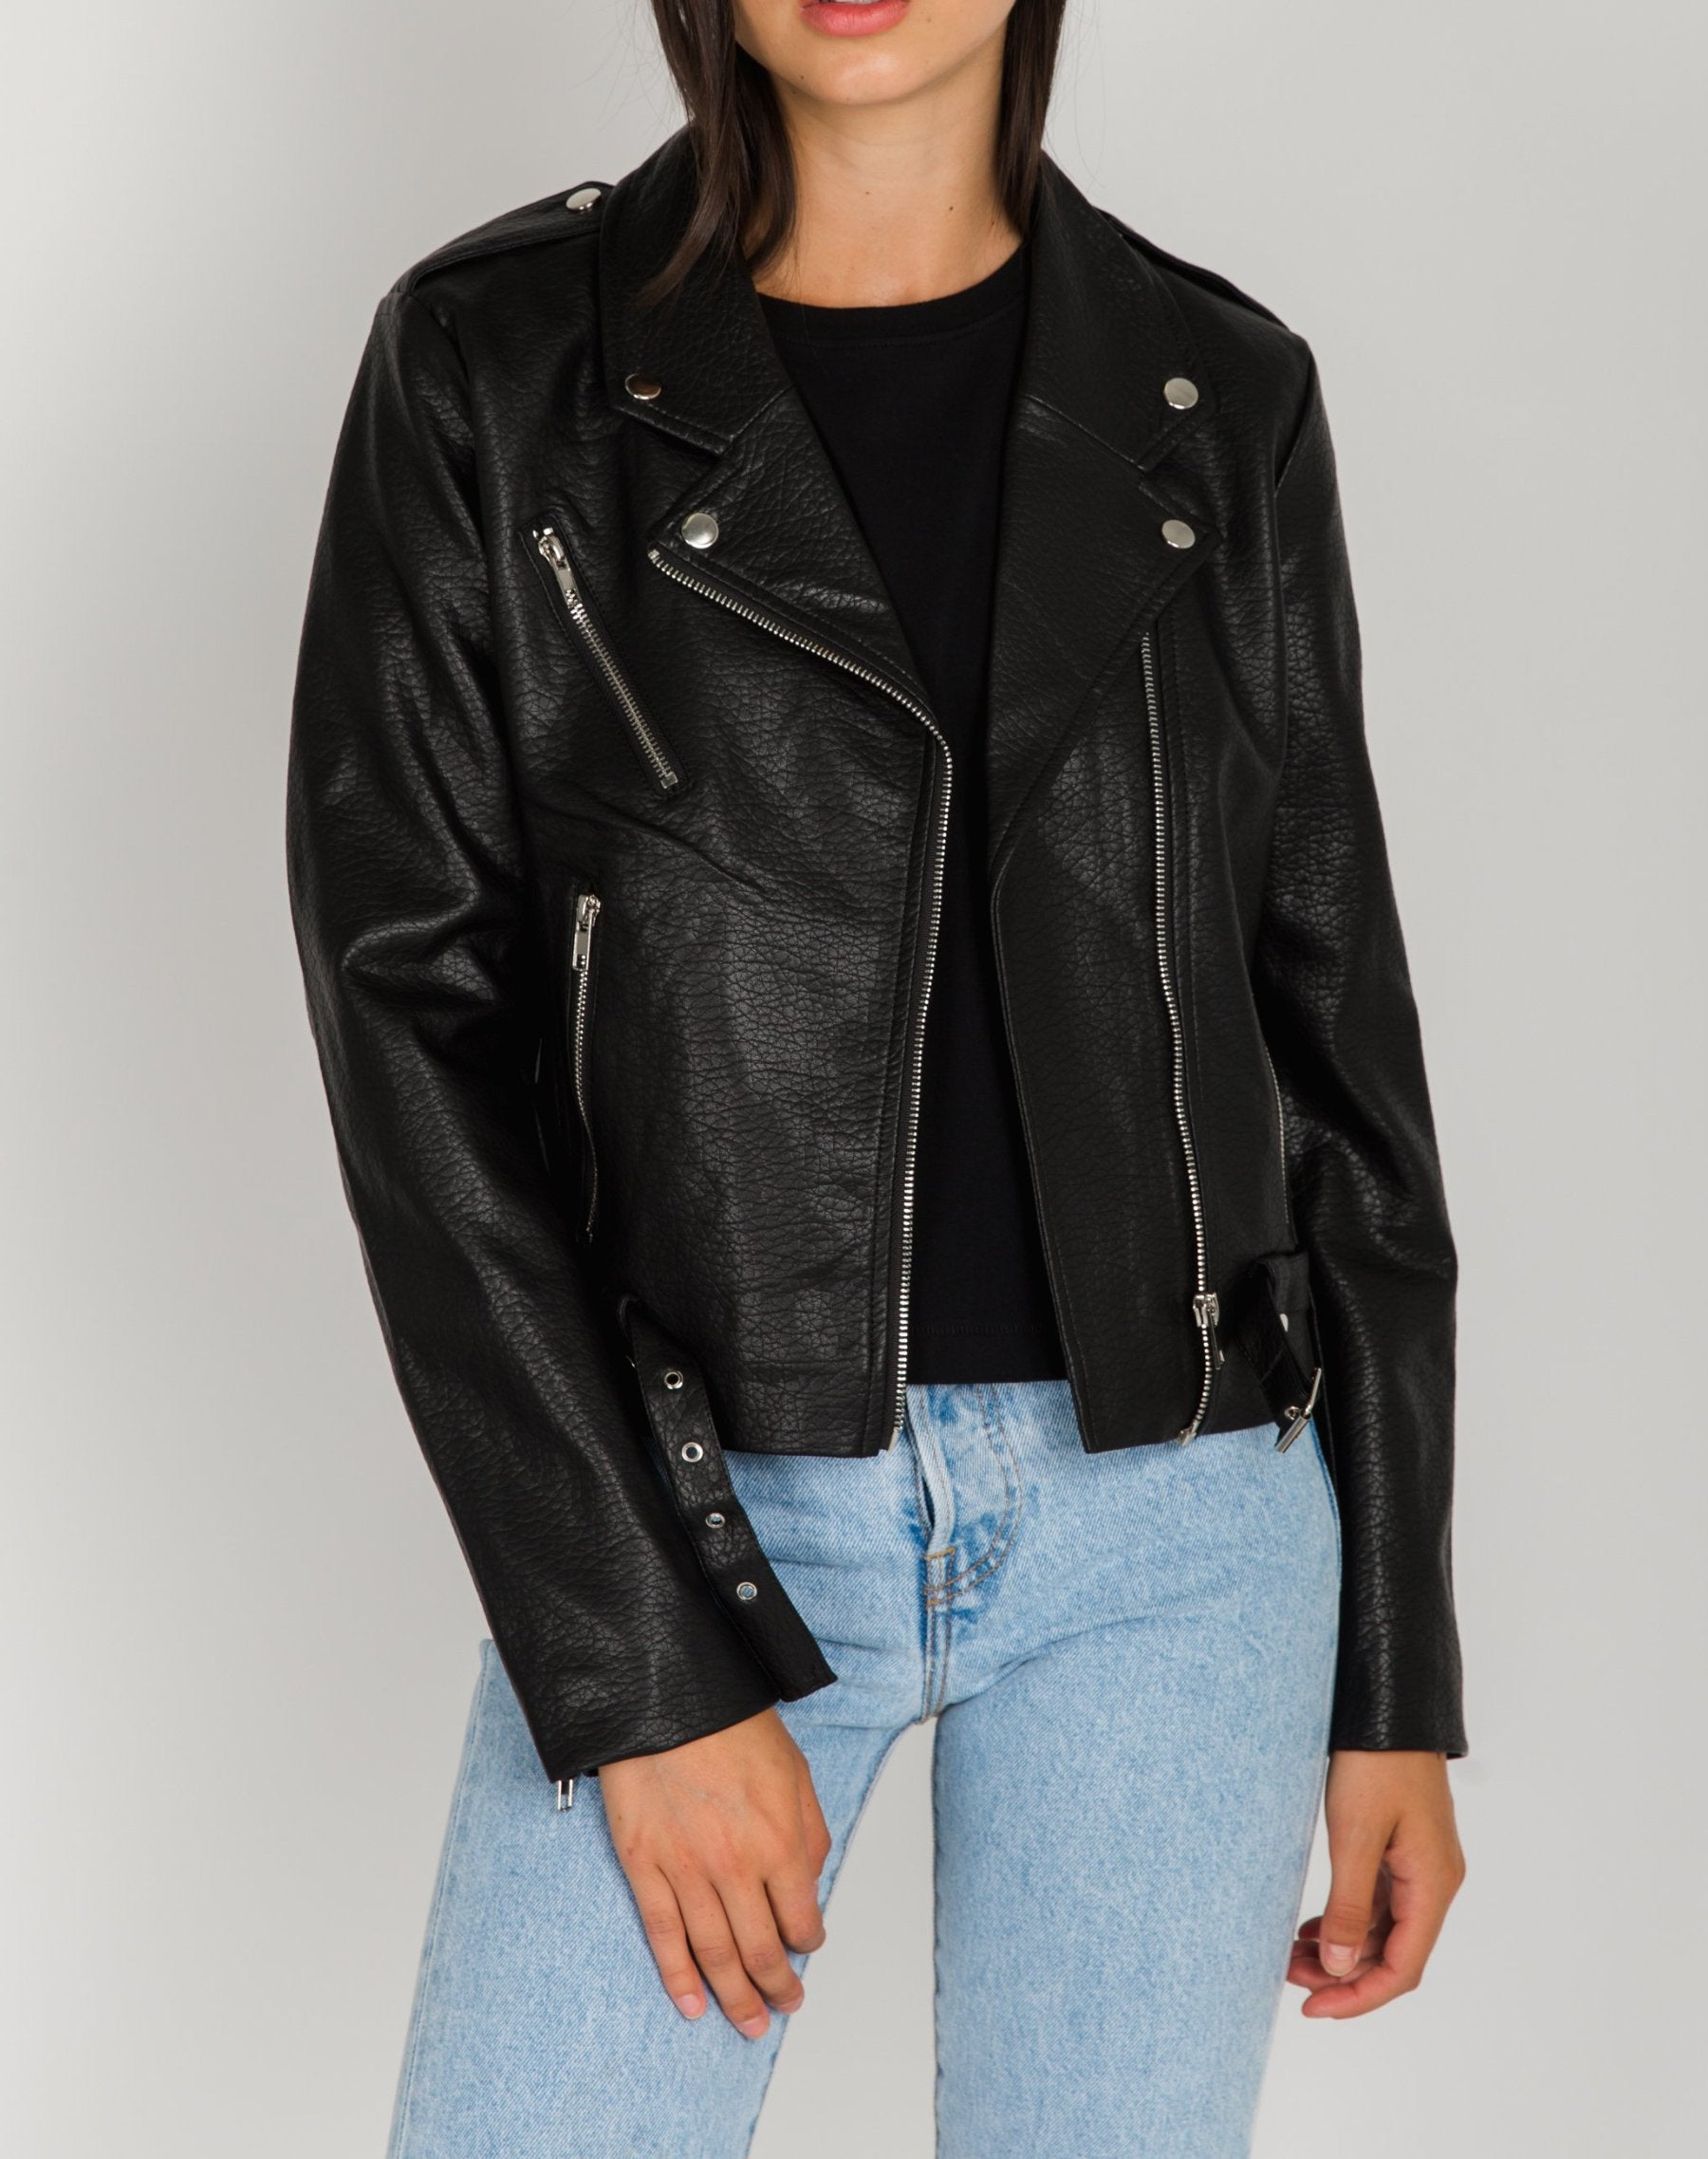 Photo 2 of the Florence vegan leather moto jacket in black by Brunette the Label.